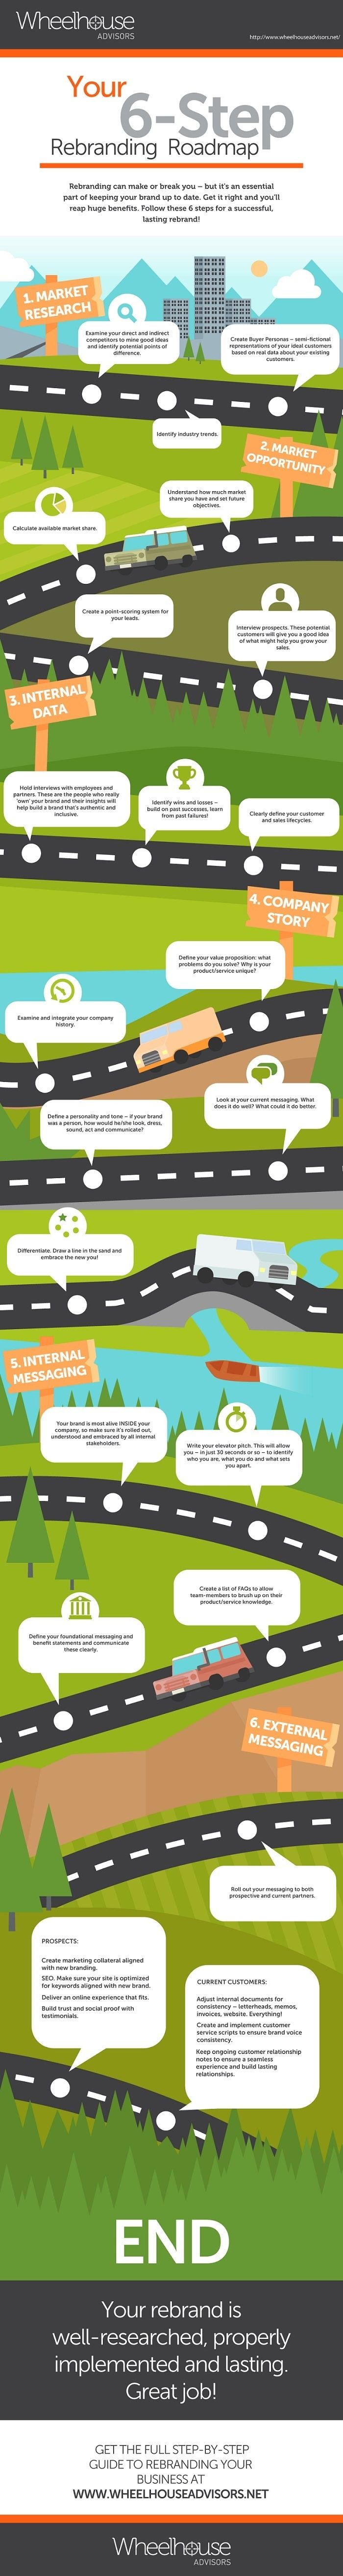 Your 6 steps roadmap to rebranding #infographic #branding